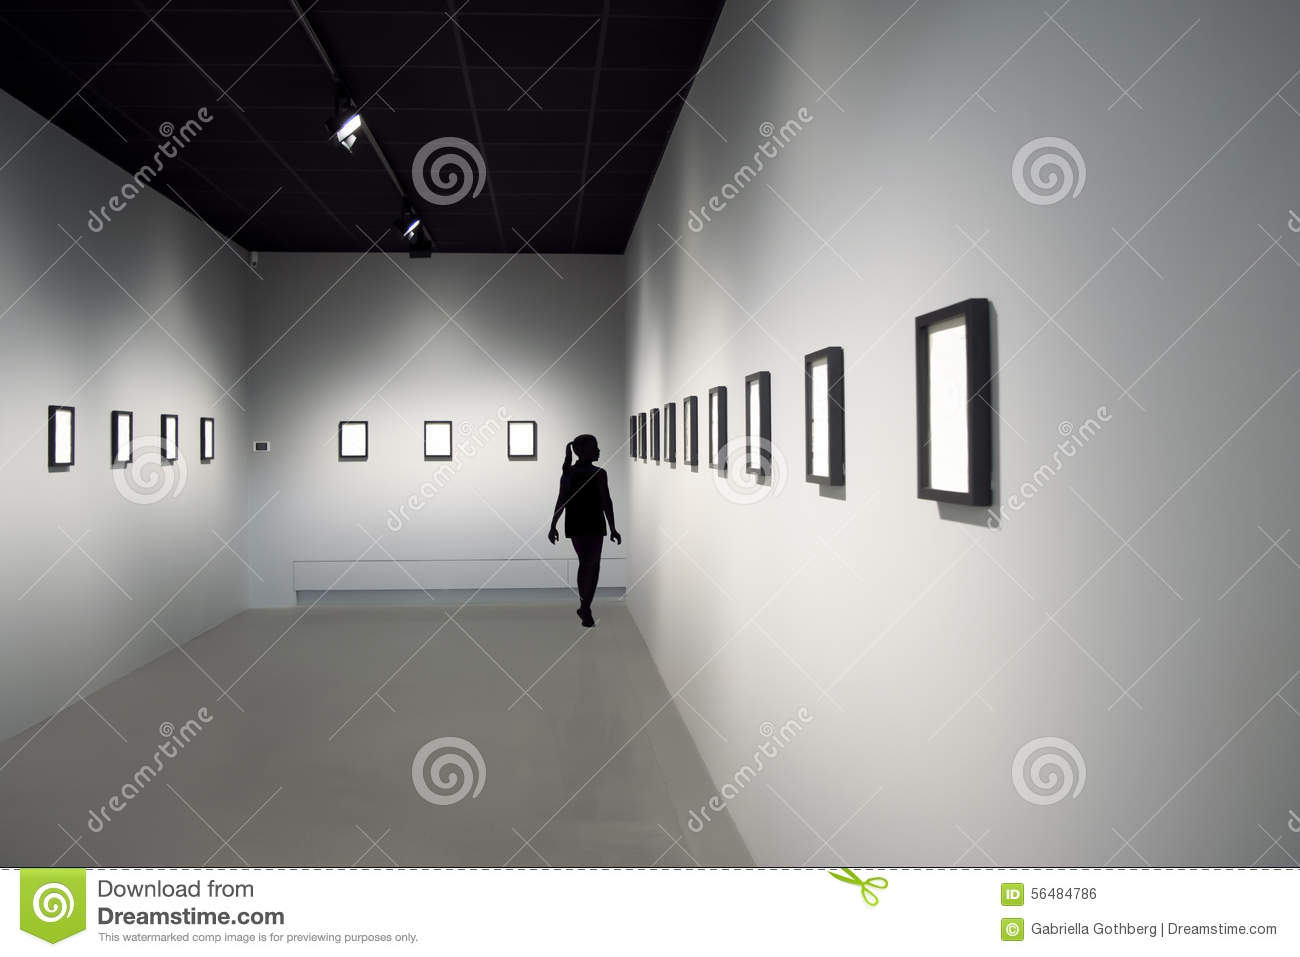 Silhouette of young girl at art exhibition